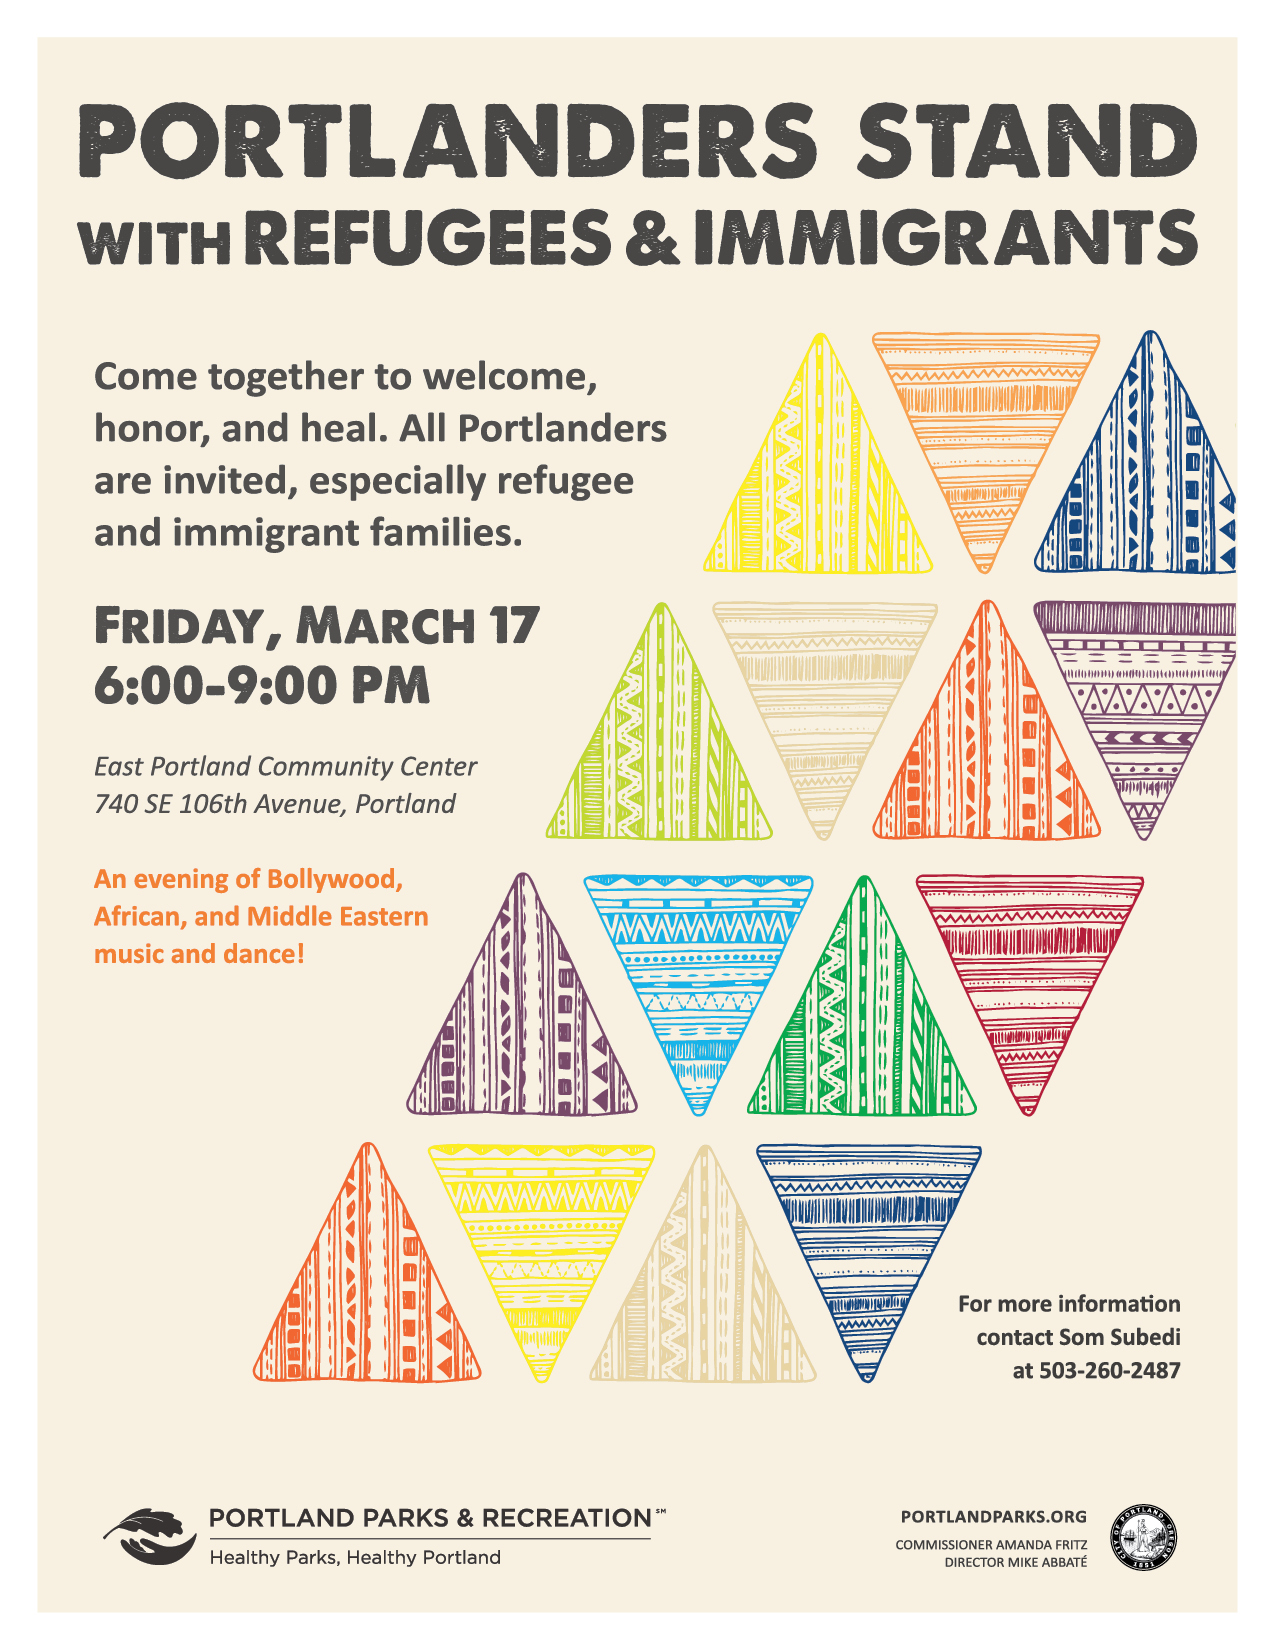 Portlanders Stand with Refugees & Immigrants